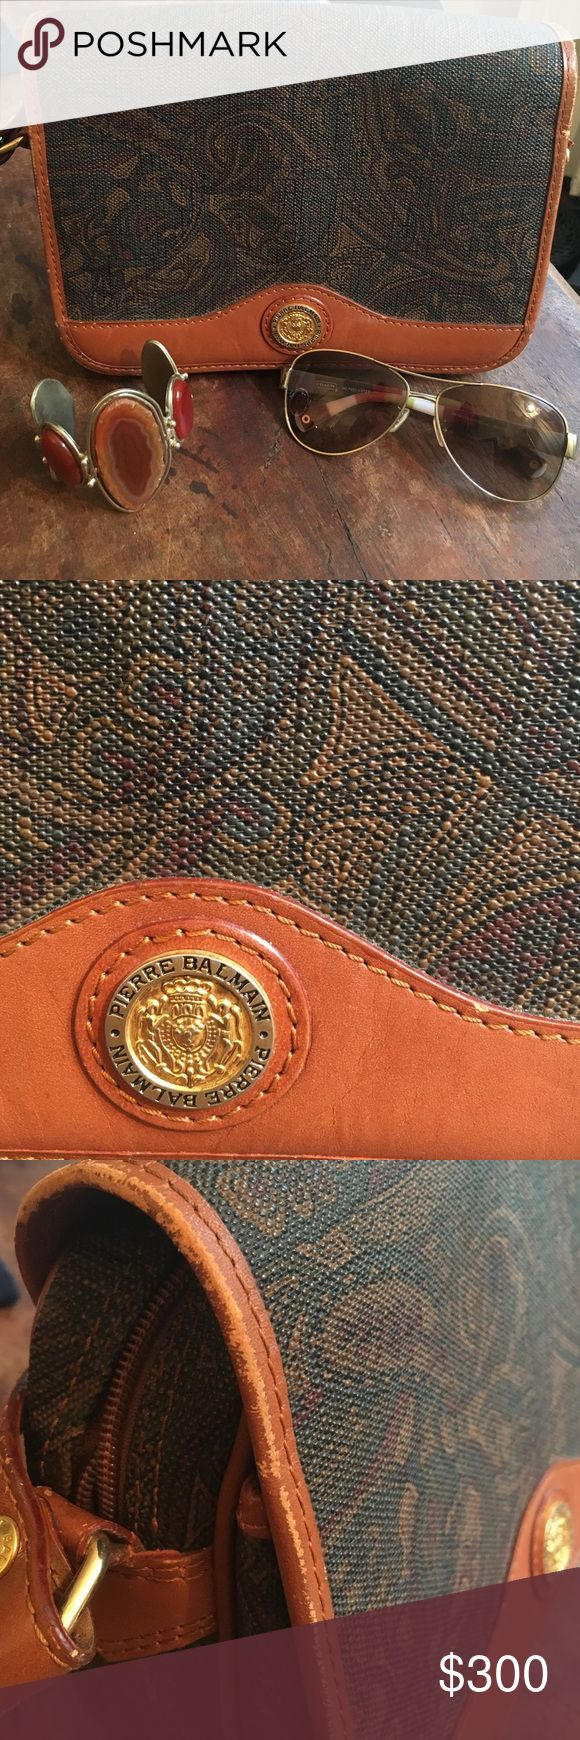 RARE vintage Pierre Balmain purse! A vintage Balmain crossbody bag in excellent condition. There is slight wear to some of the brown leather on the outside of the bag, but could easily be touched up by a cobbler or handbag repair person. Balmain Bags Crossbody Bags